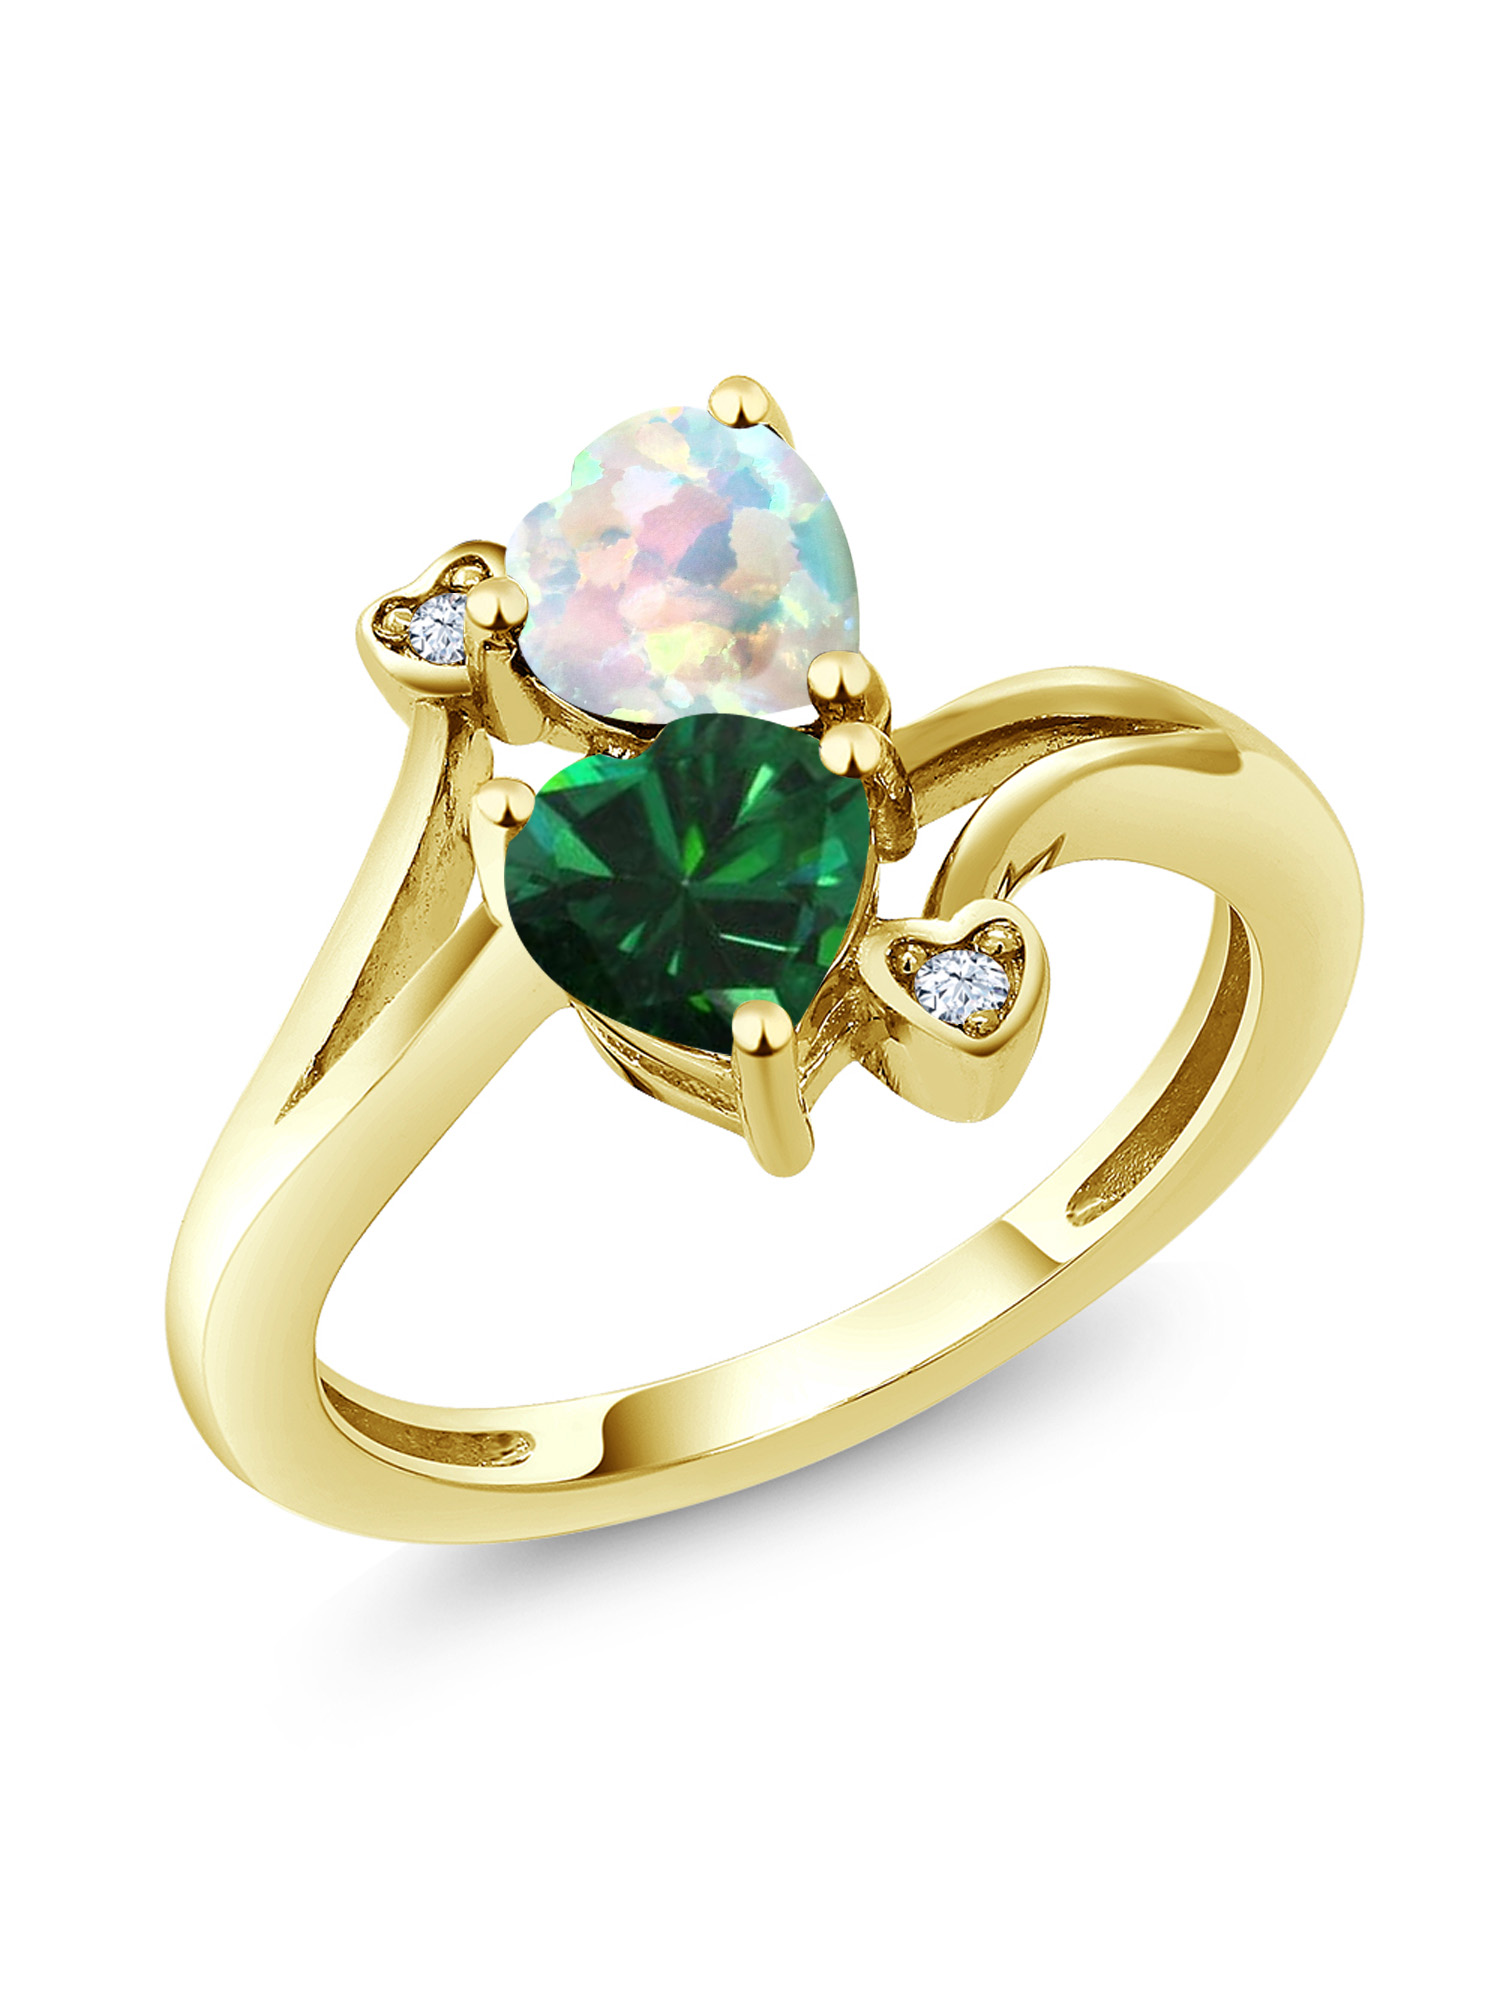 1.46 Ct Green Simulated Emerald White Simulated Opal 10K Yellow Gold Ring by